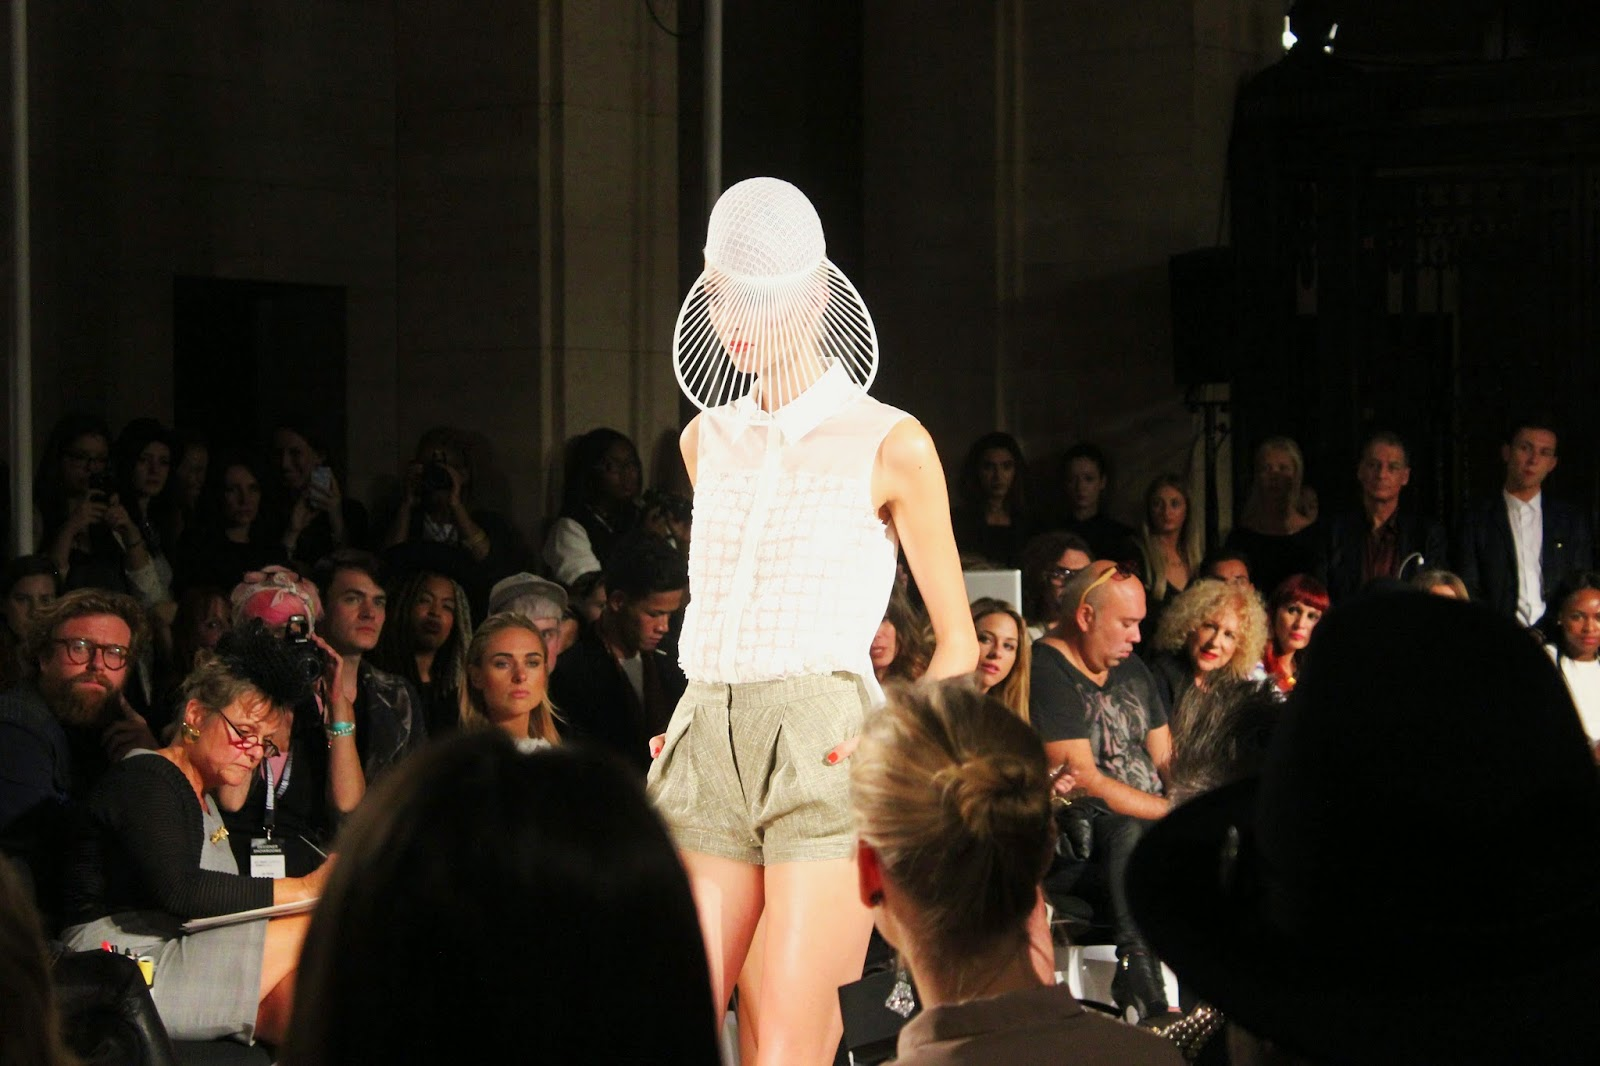 london-fashion-week-2014-lfw-spring-summer-2015-blogger-fashion-freemasons hall-fashion-scout-ashley-isham-catwalk-models-shirt-shorts